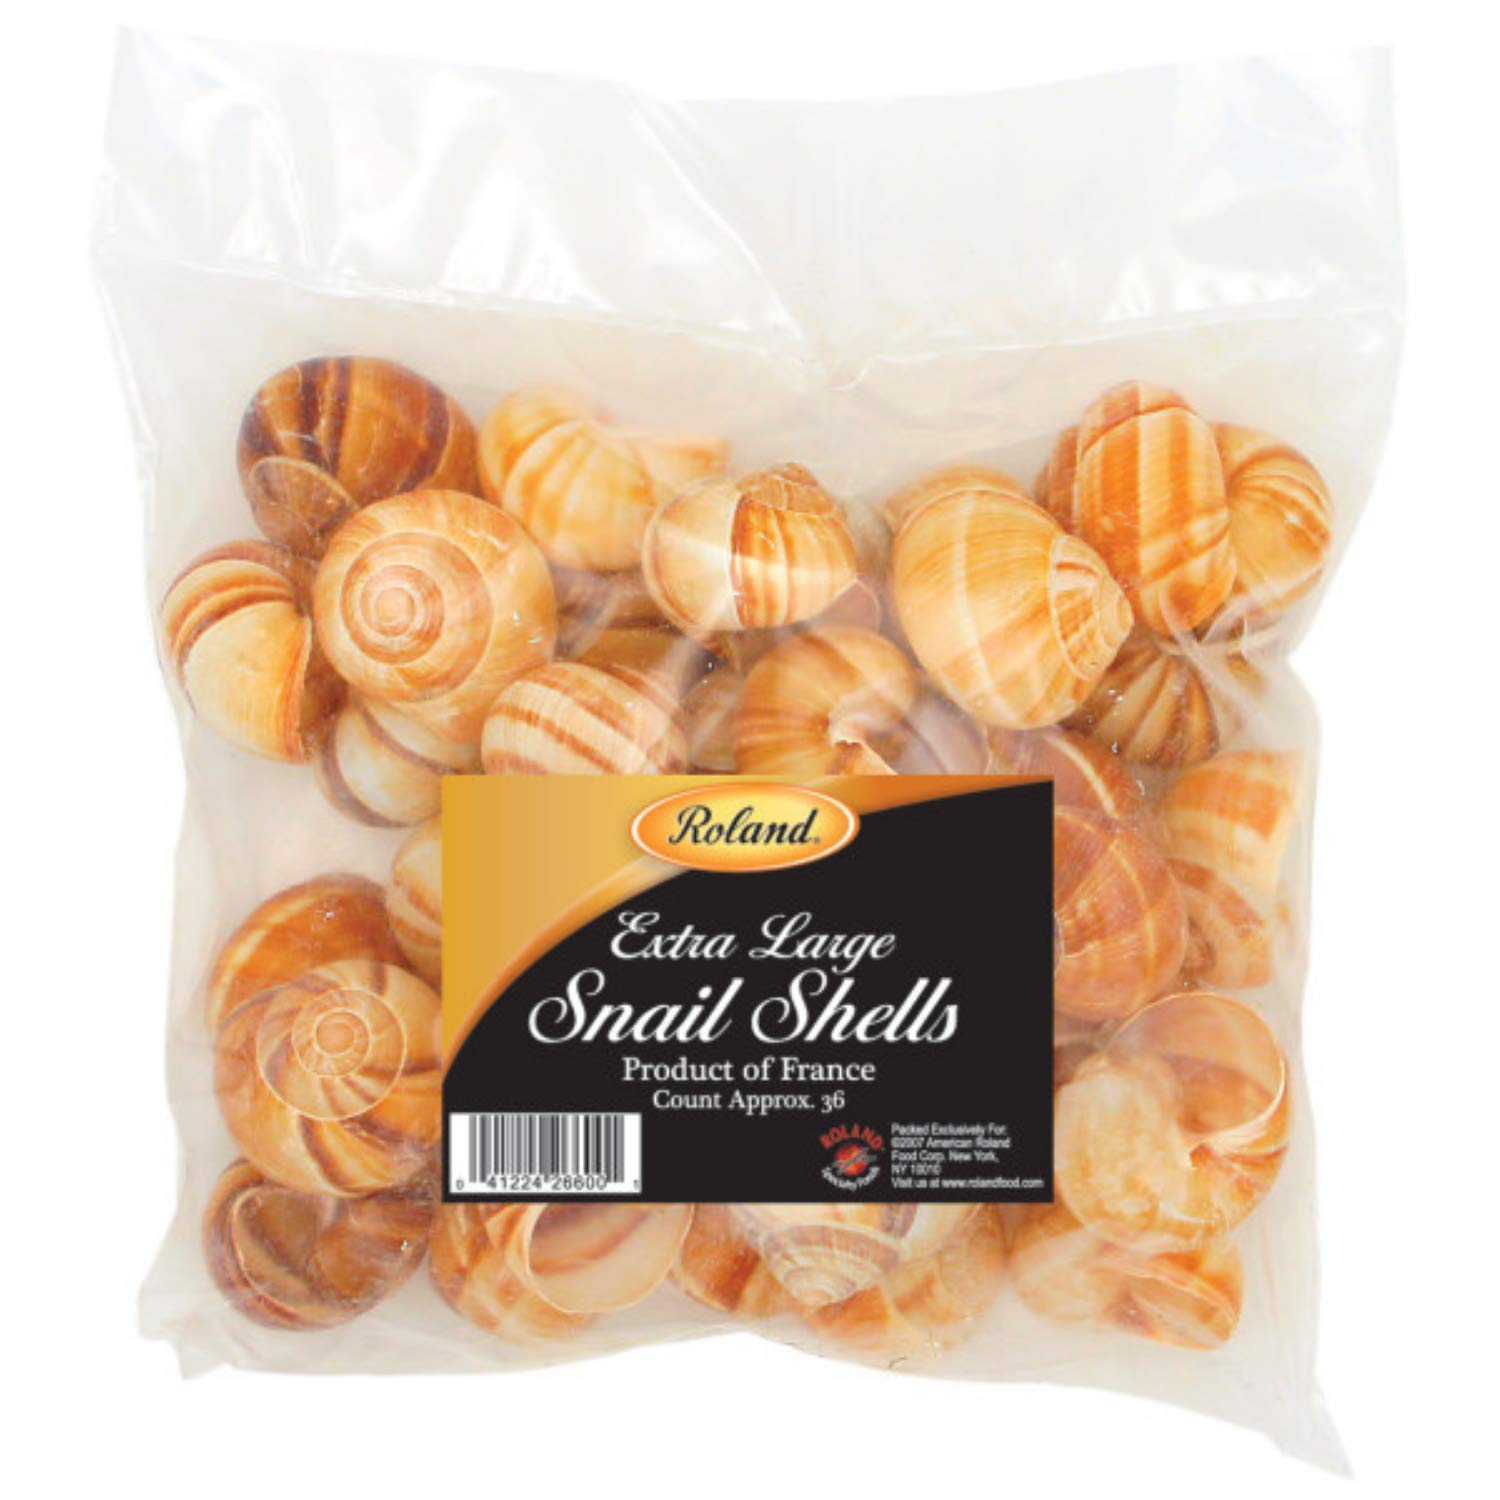 Roland Foods Extra Large Snail Shells, Specialty Imported Food, 36 Count Bag